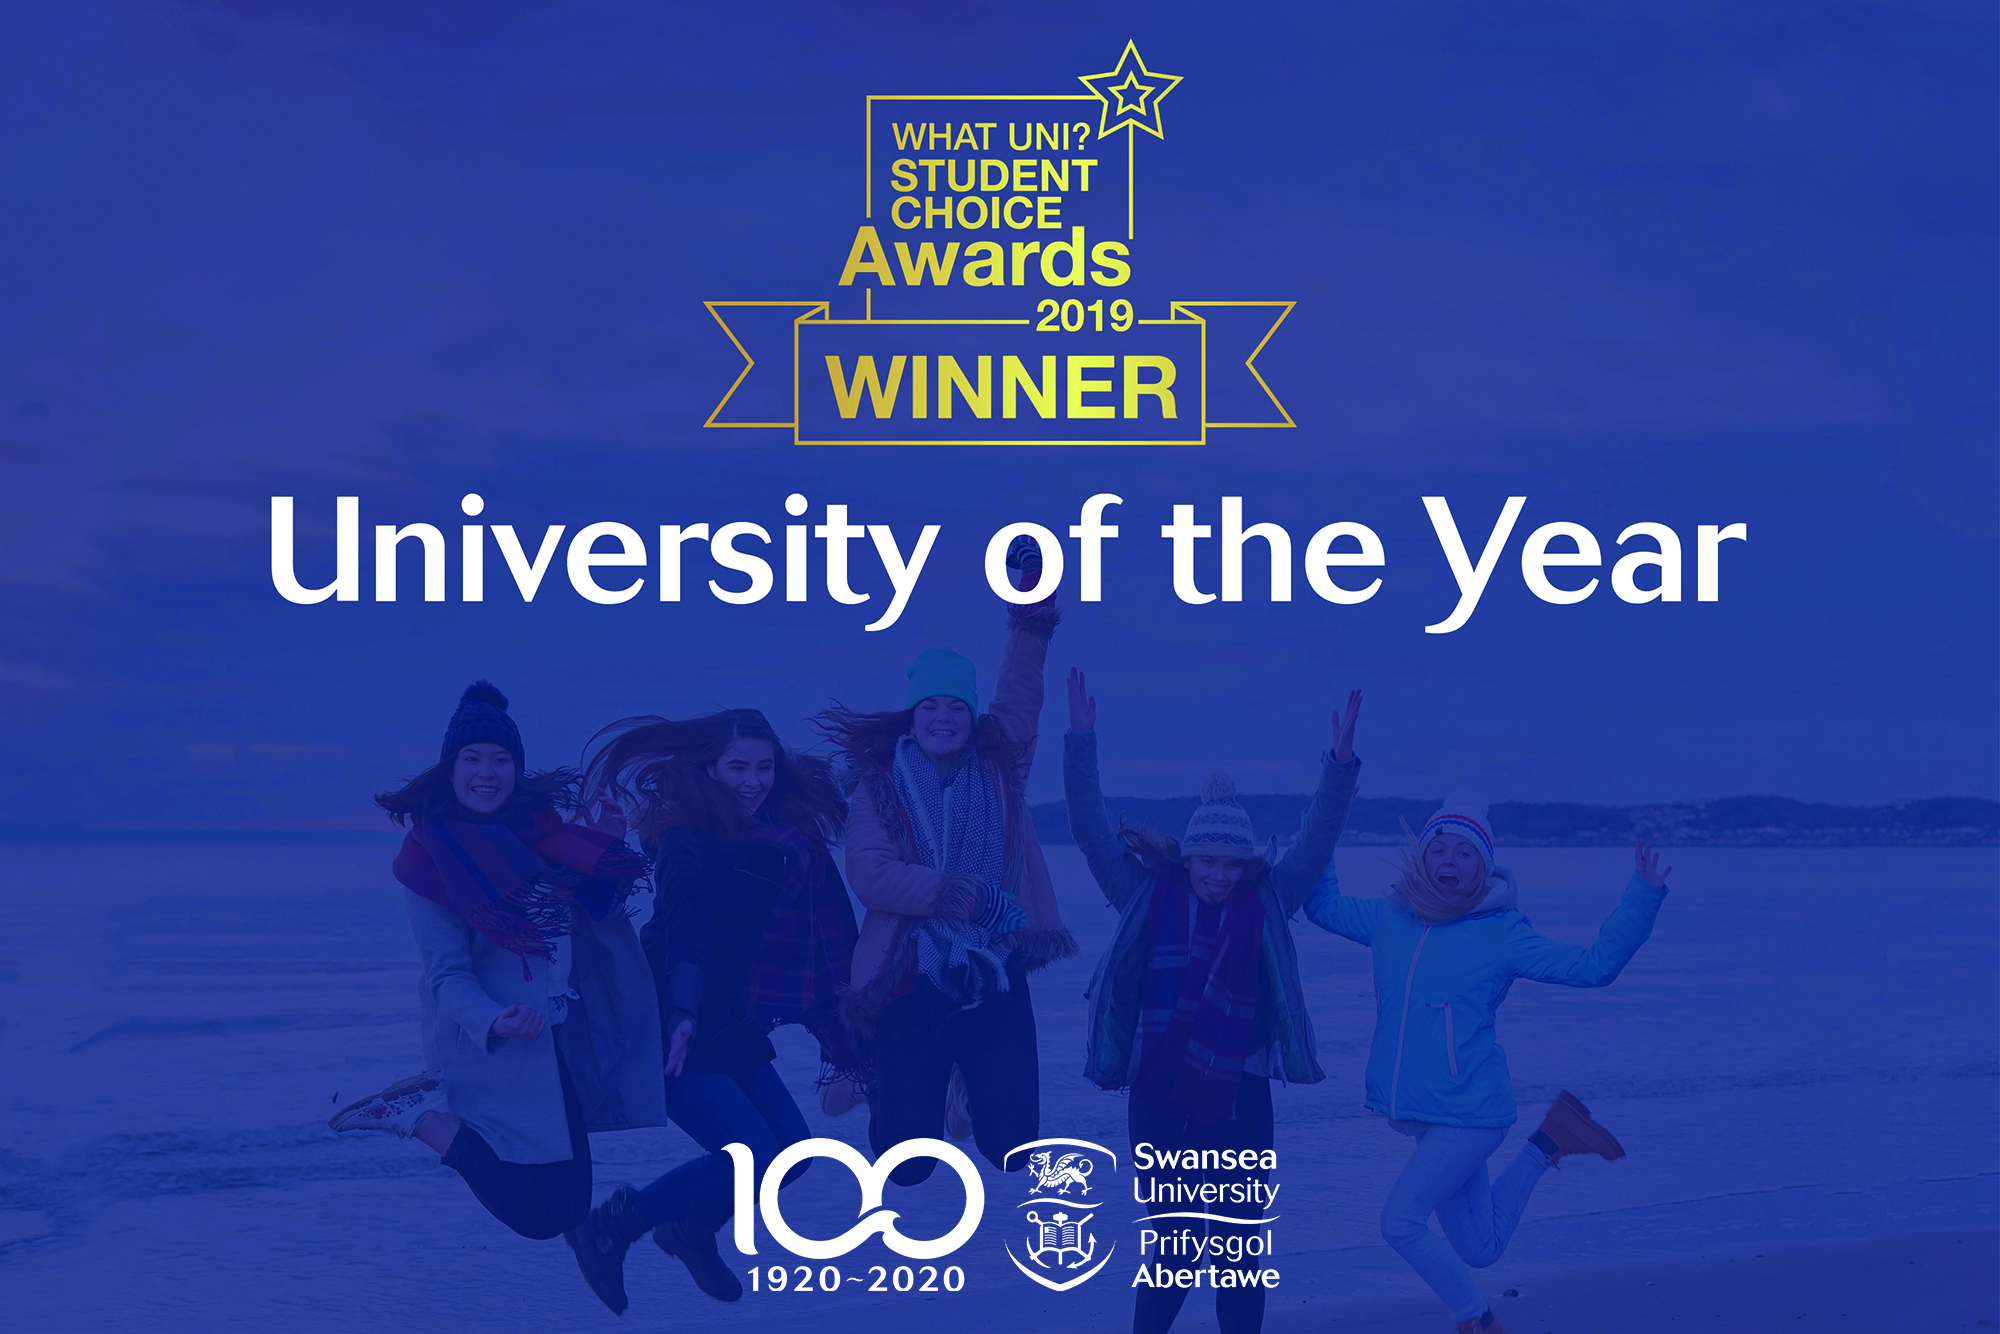 University of the Year 2019 Winner